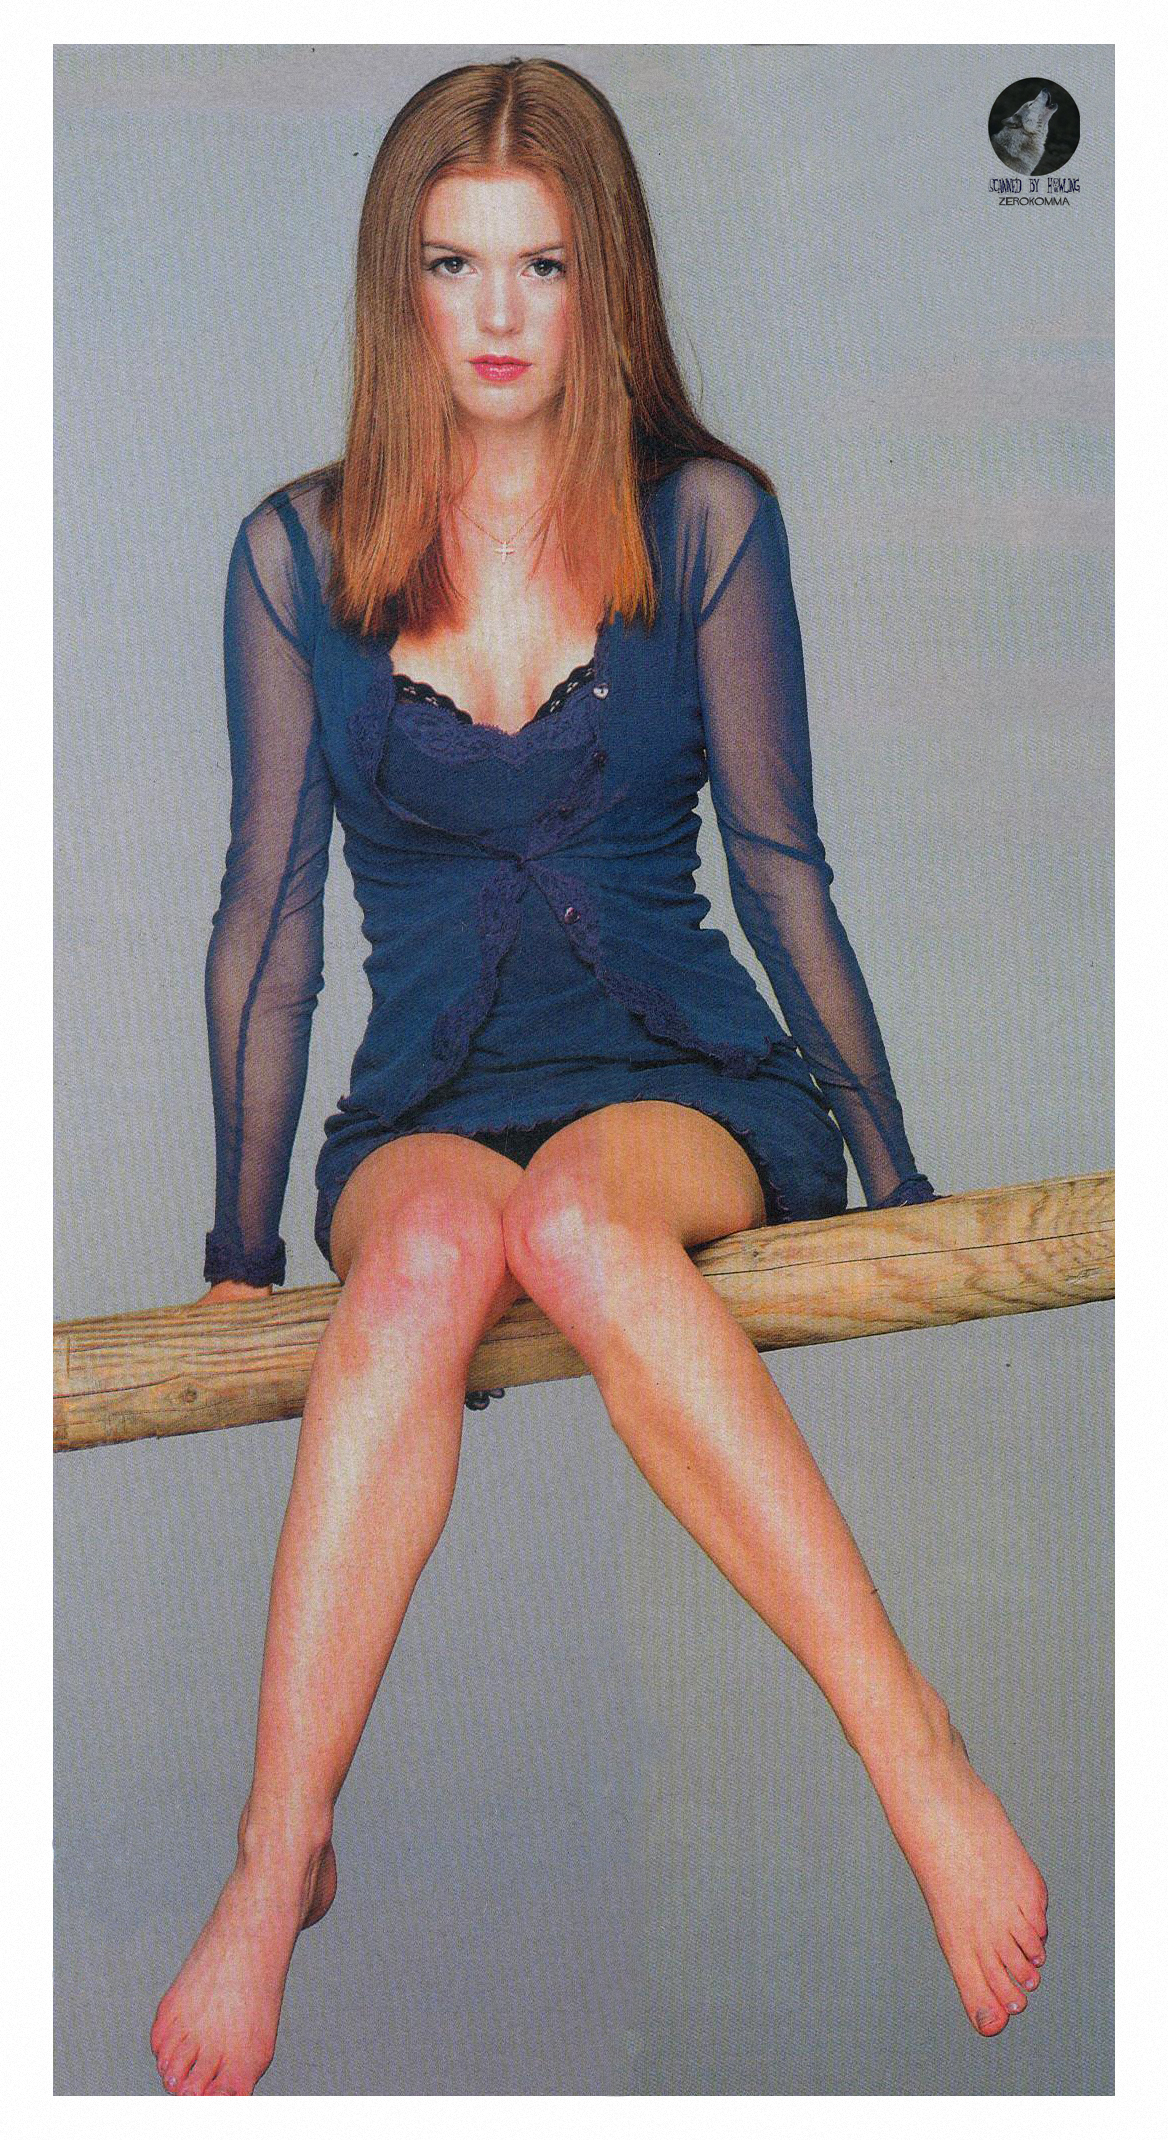 toes Isla fisher